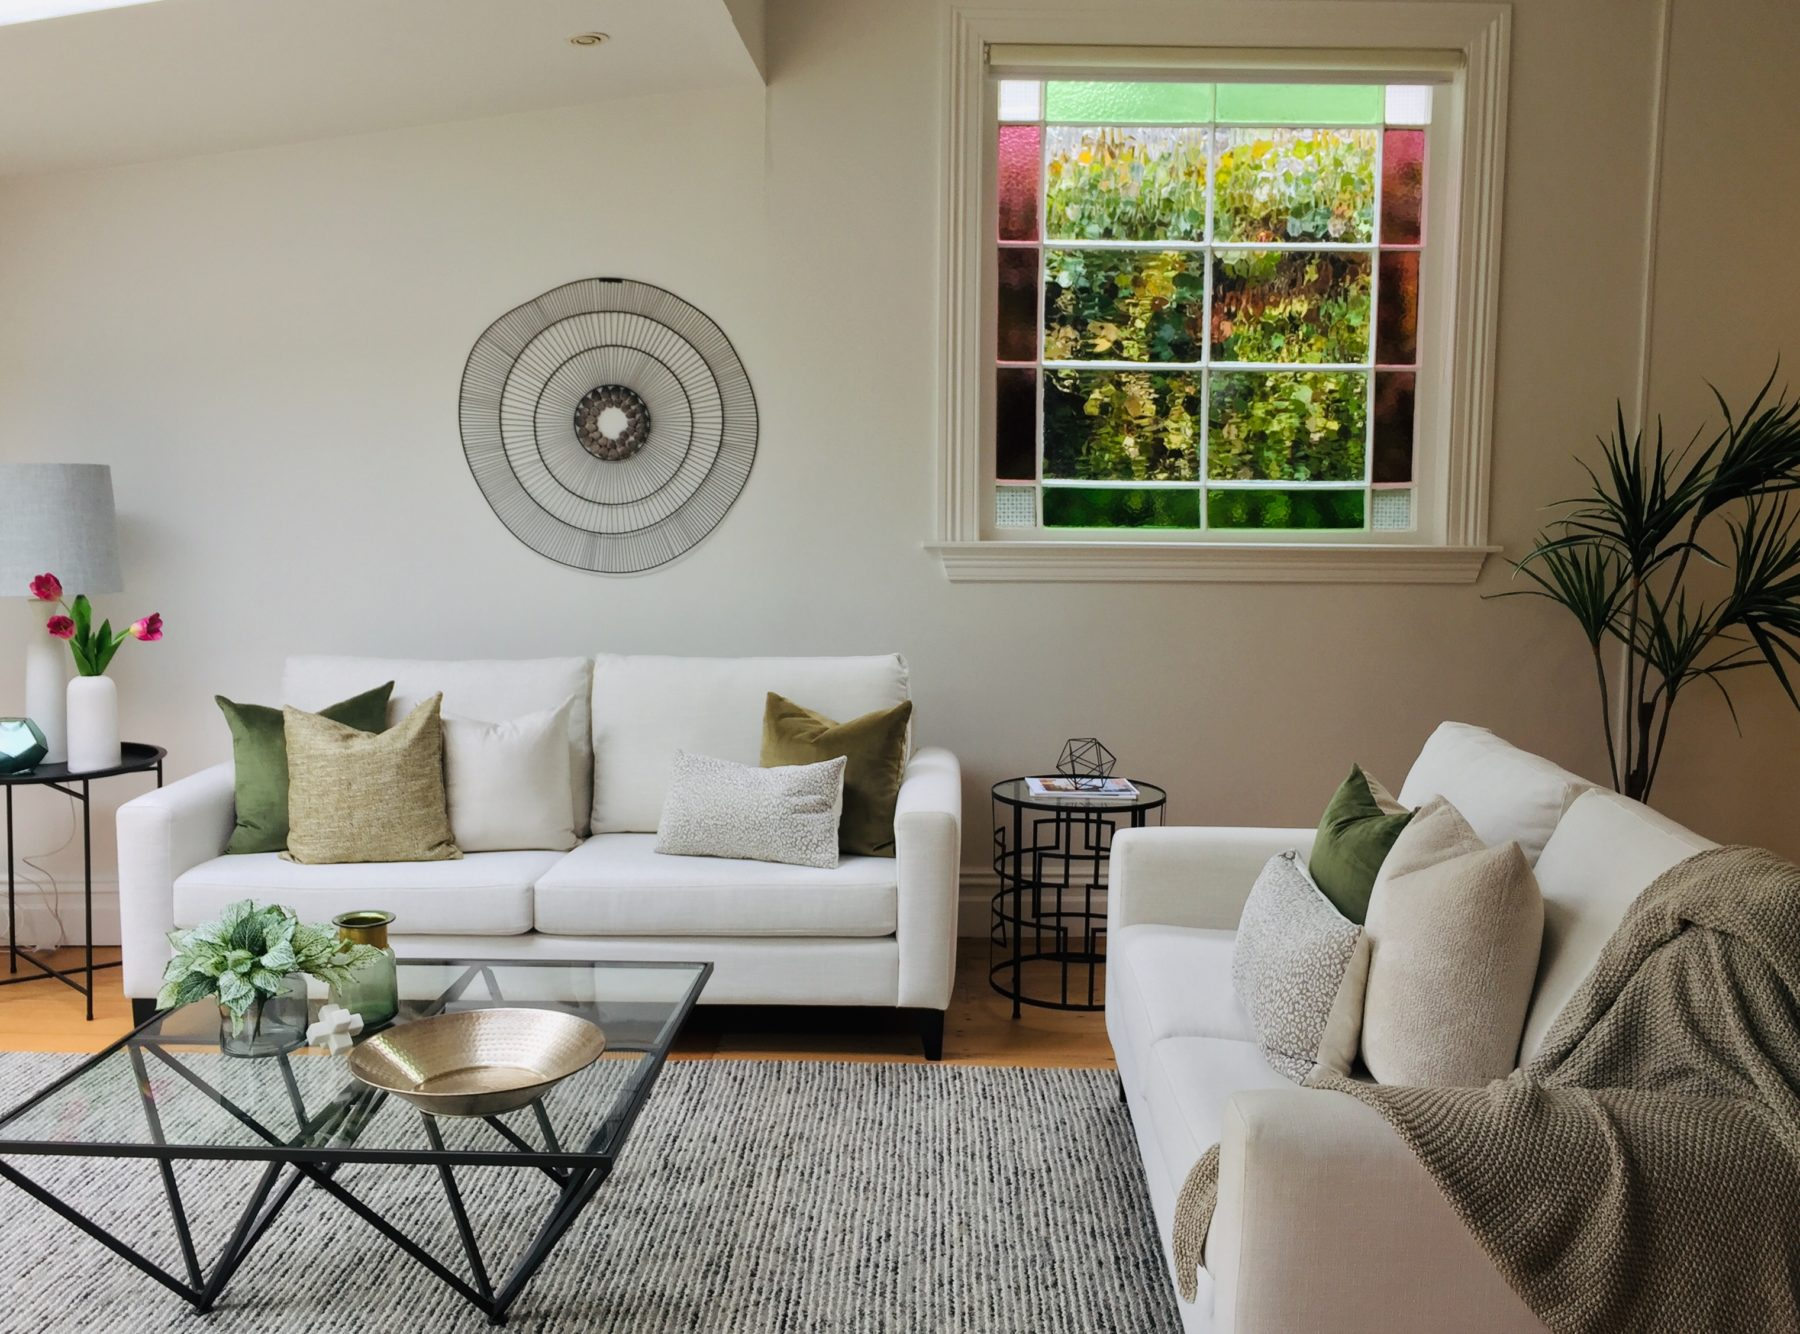 traditional villa living room with stained glass window and modern white couches